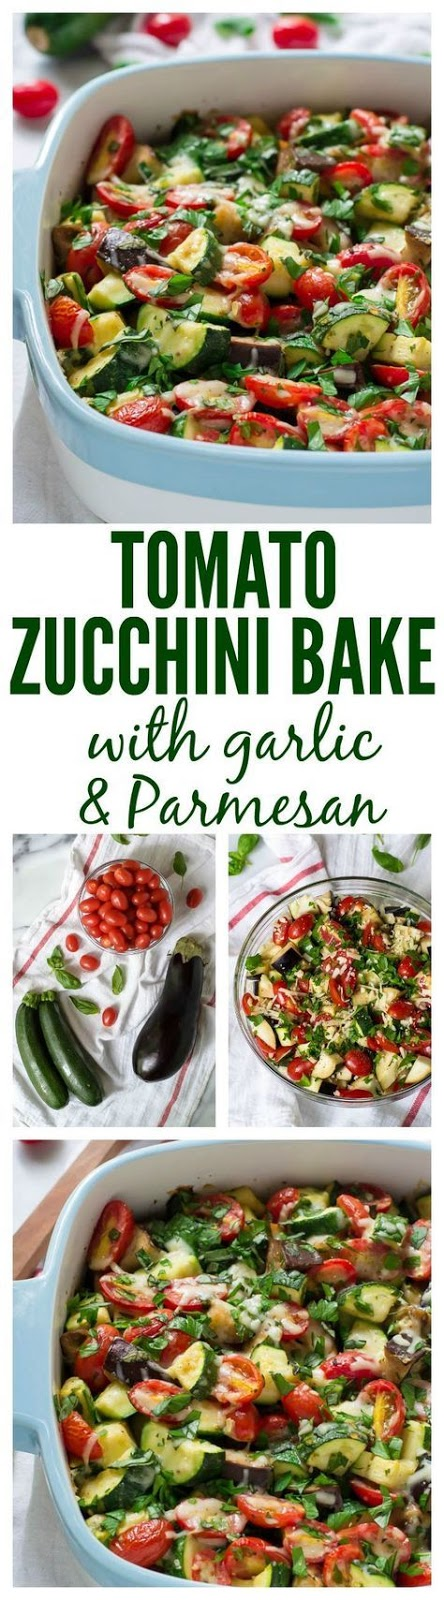 One of the most difficult fantasies for me to give up when we bought our house was having a garden. After six years of living in an apartment, I had romantic visions of planting my own vegetables, harvesting them with care, and using them to make beautiful summer recipes like today's Tomato Eggplant Zucchini Bake.